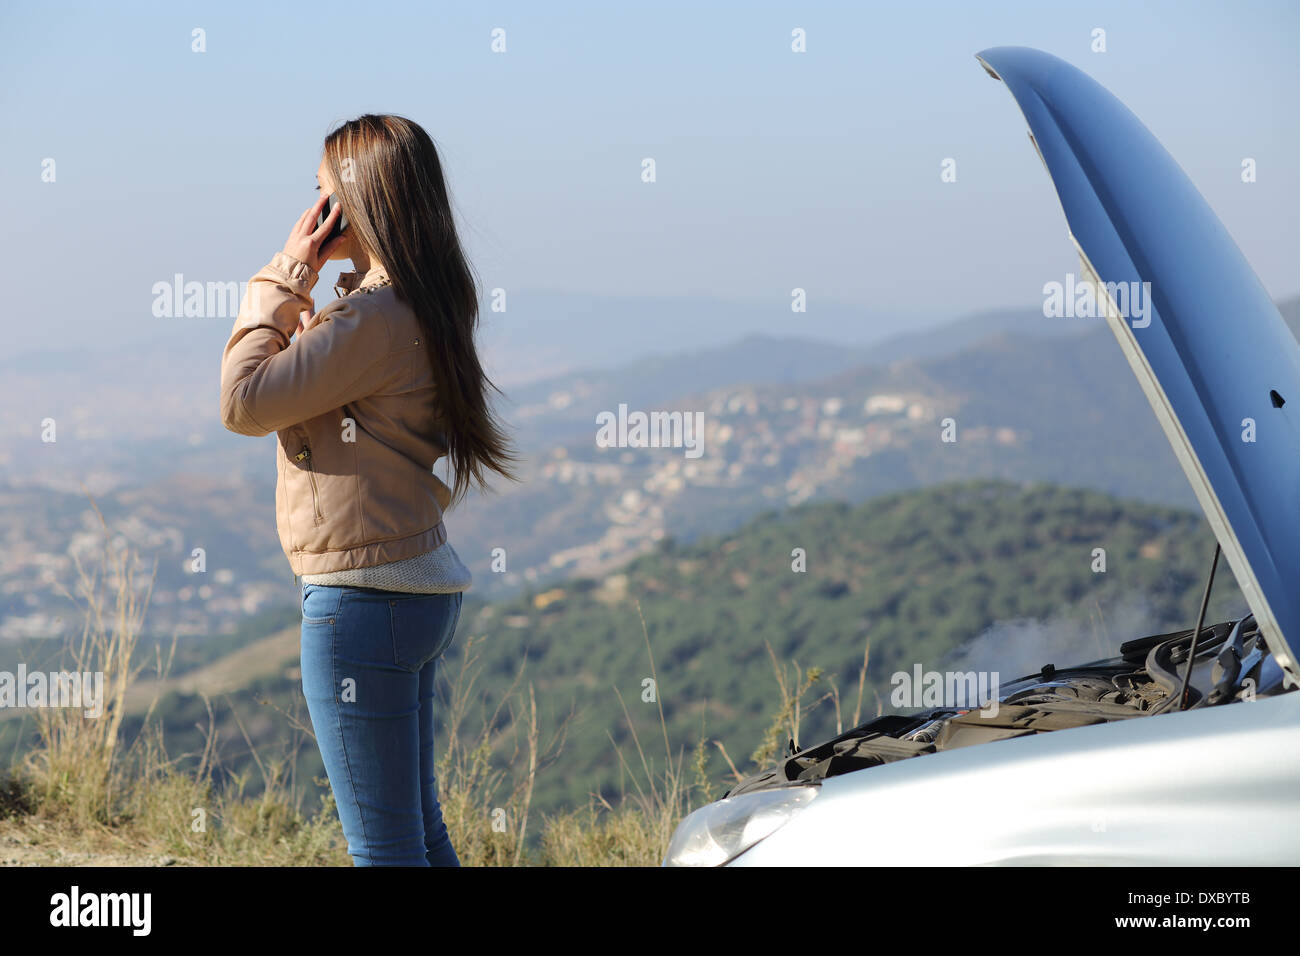 Woman on the phone asking for assistance beside her crashed breakdown car in a mountain road - Stock Image